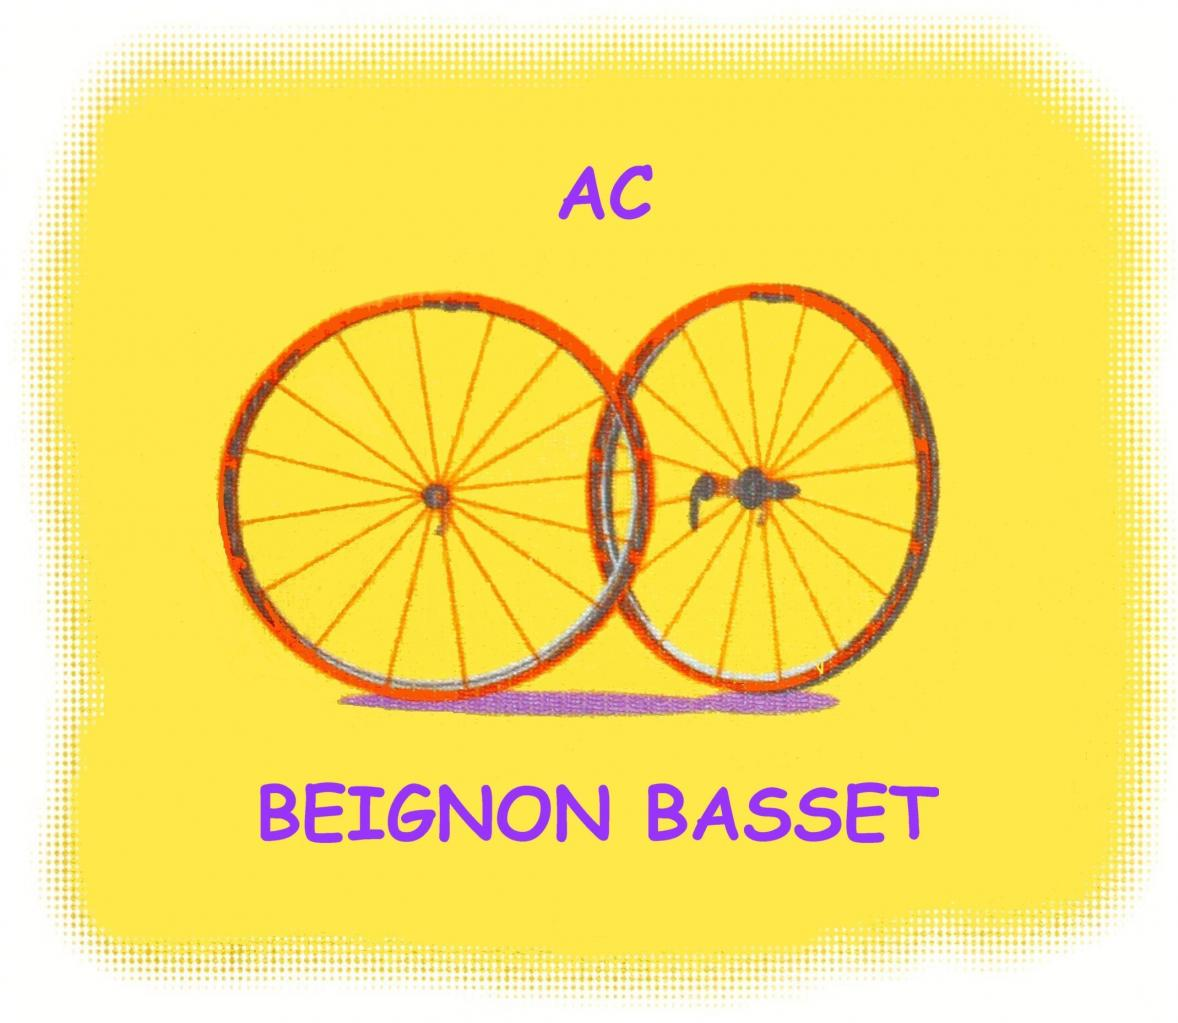 Association Cyclotourisme Beignon Basset